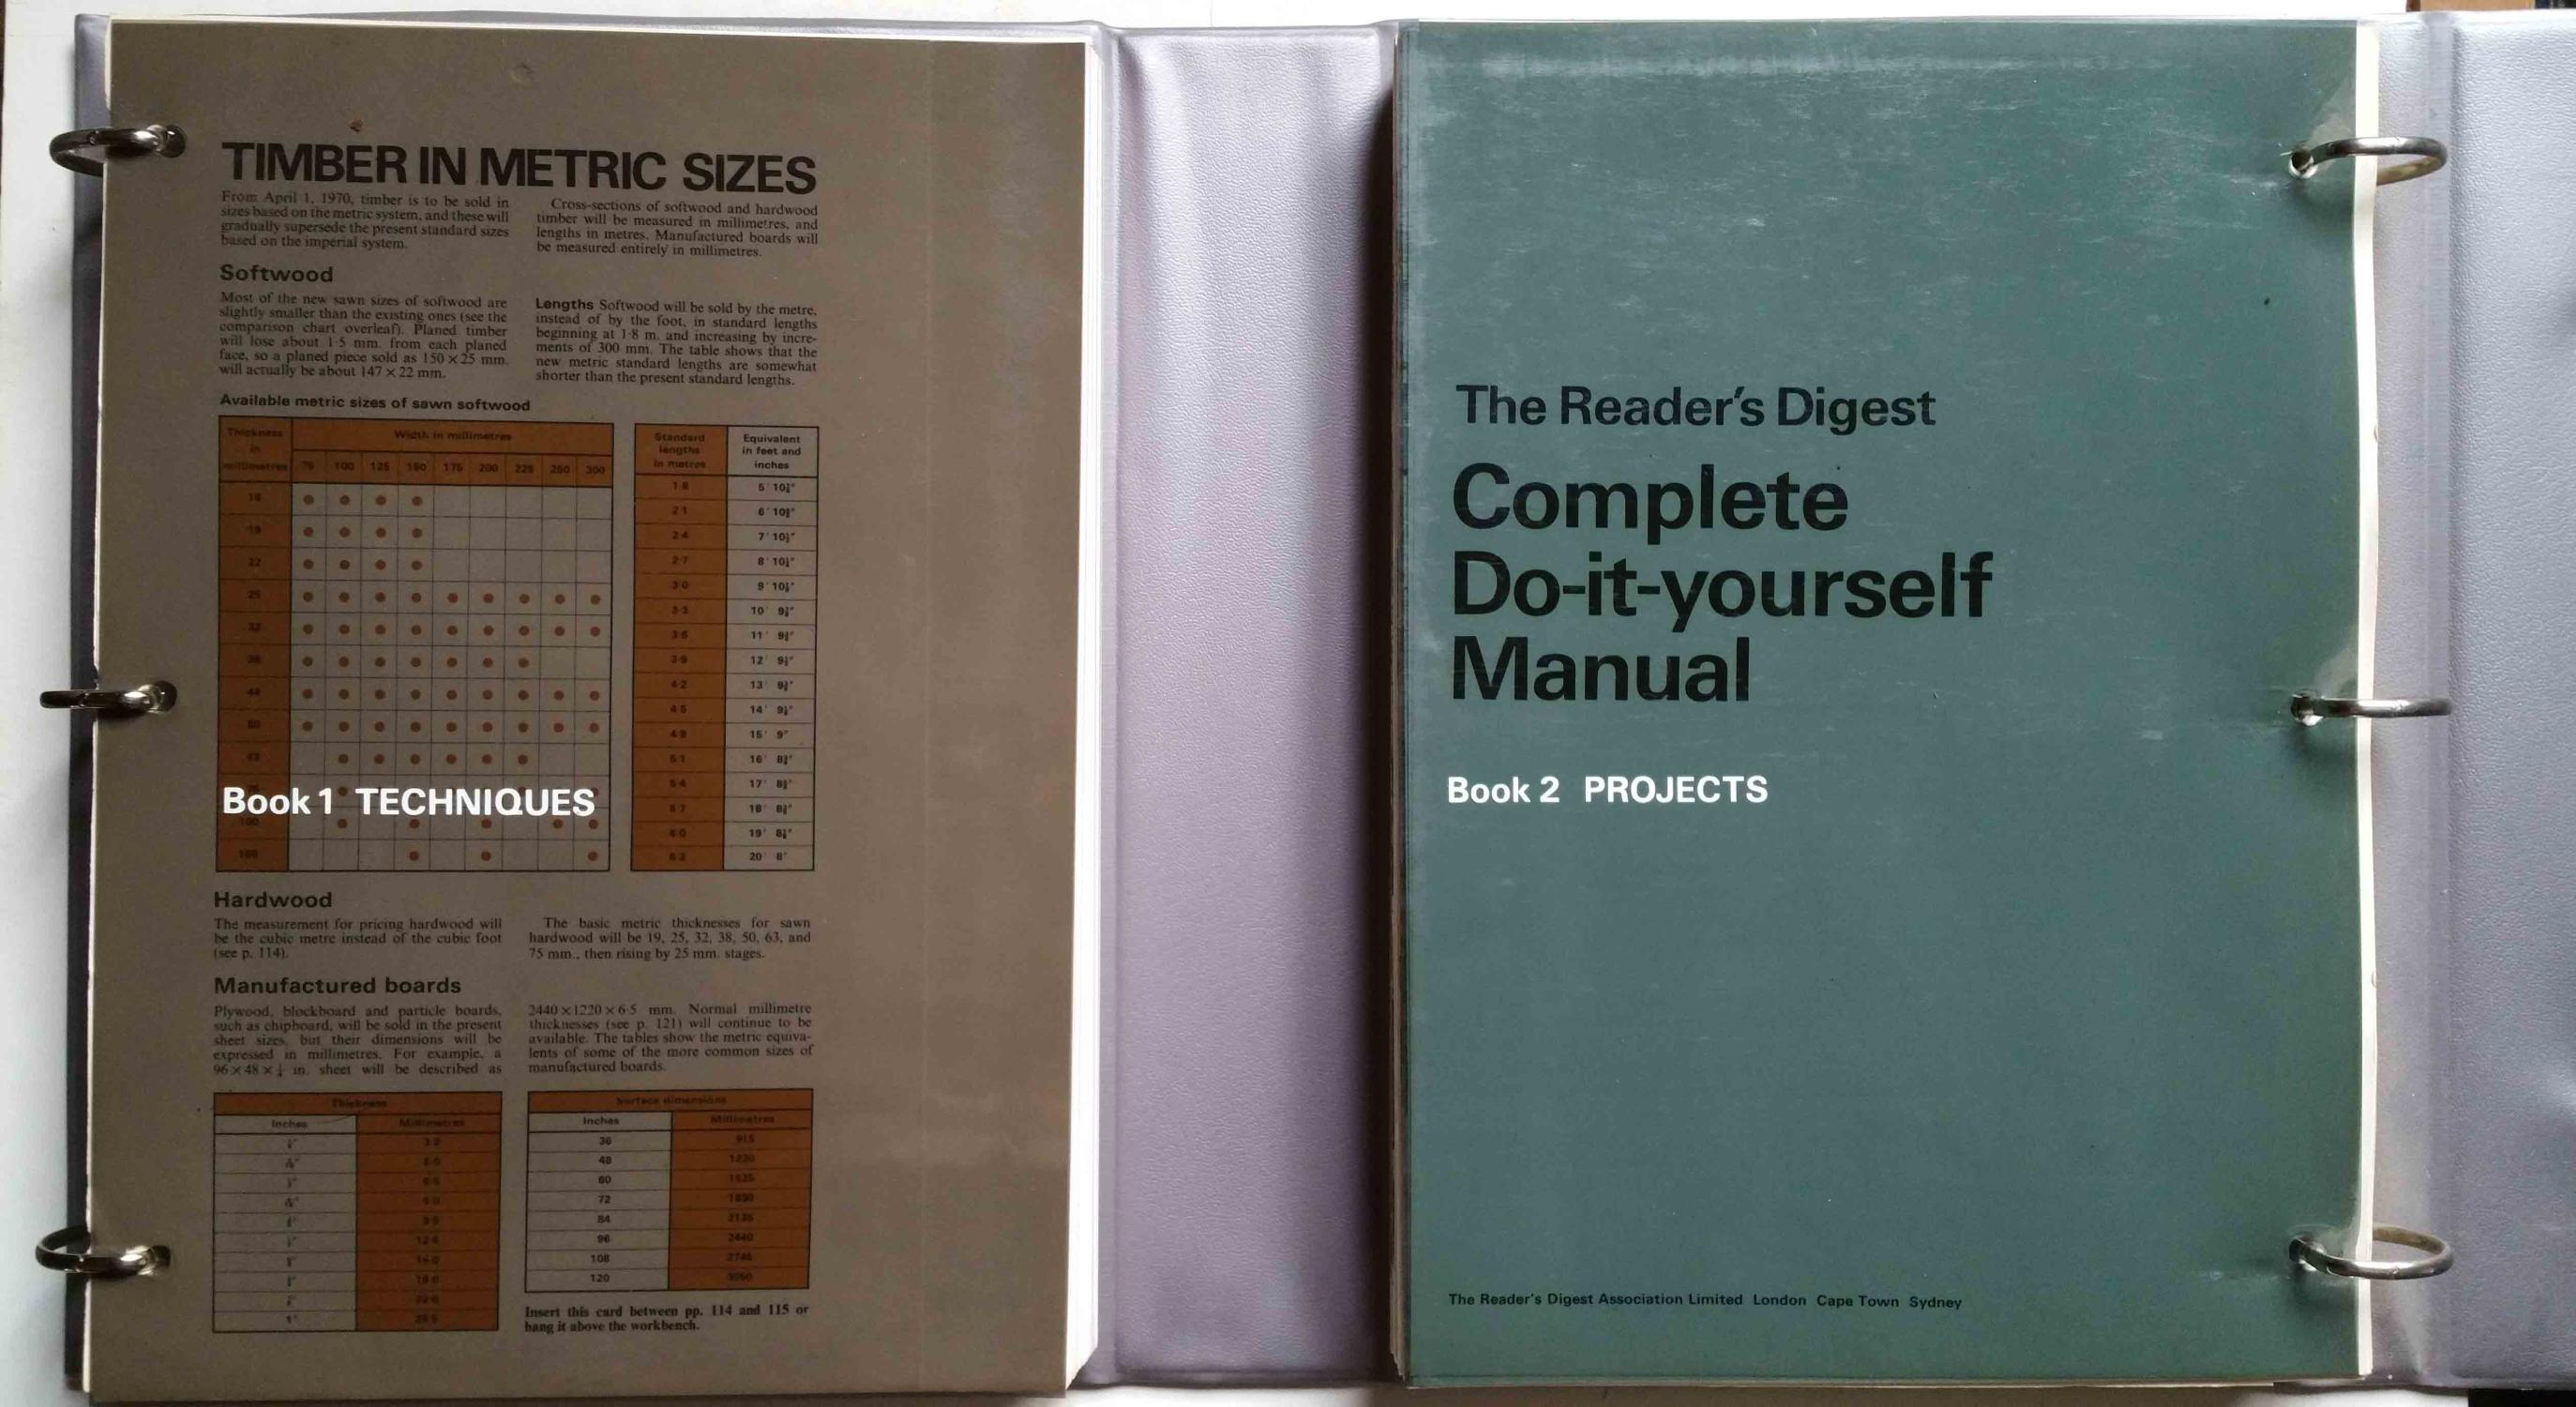 The readers digest complete do it yourself manual by nicholas j the readers digest complete do it yourself manual nicholas j frewing solutioingenieria Images